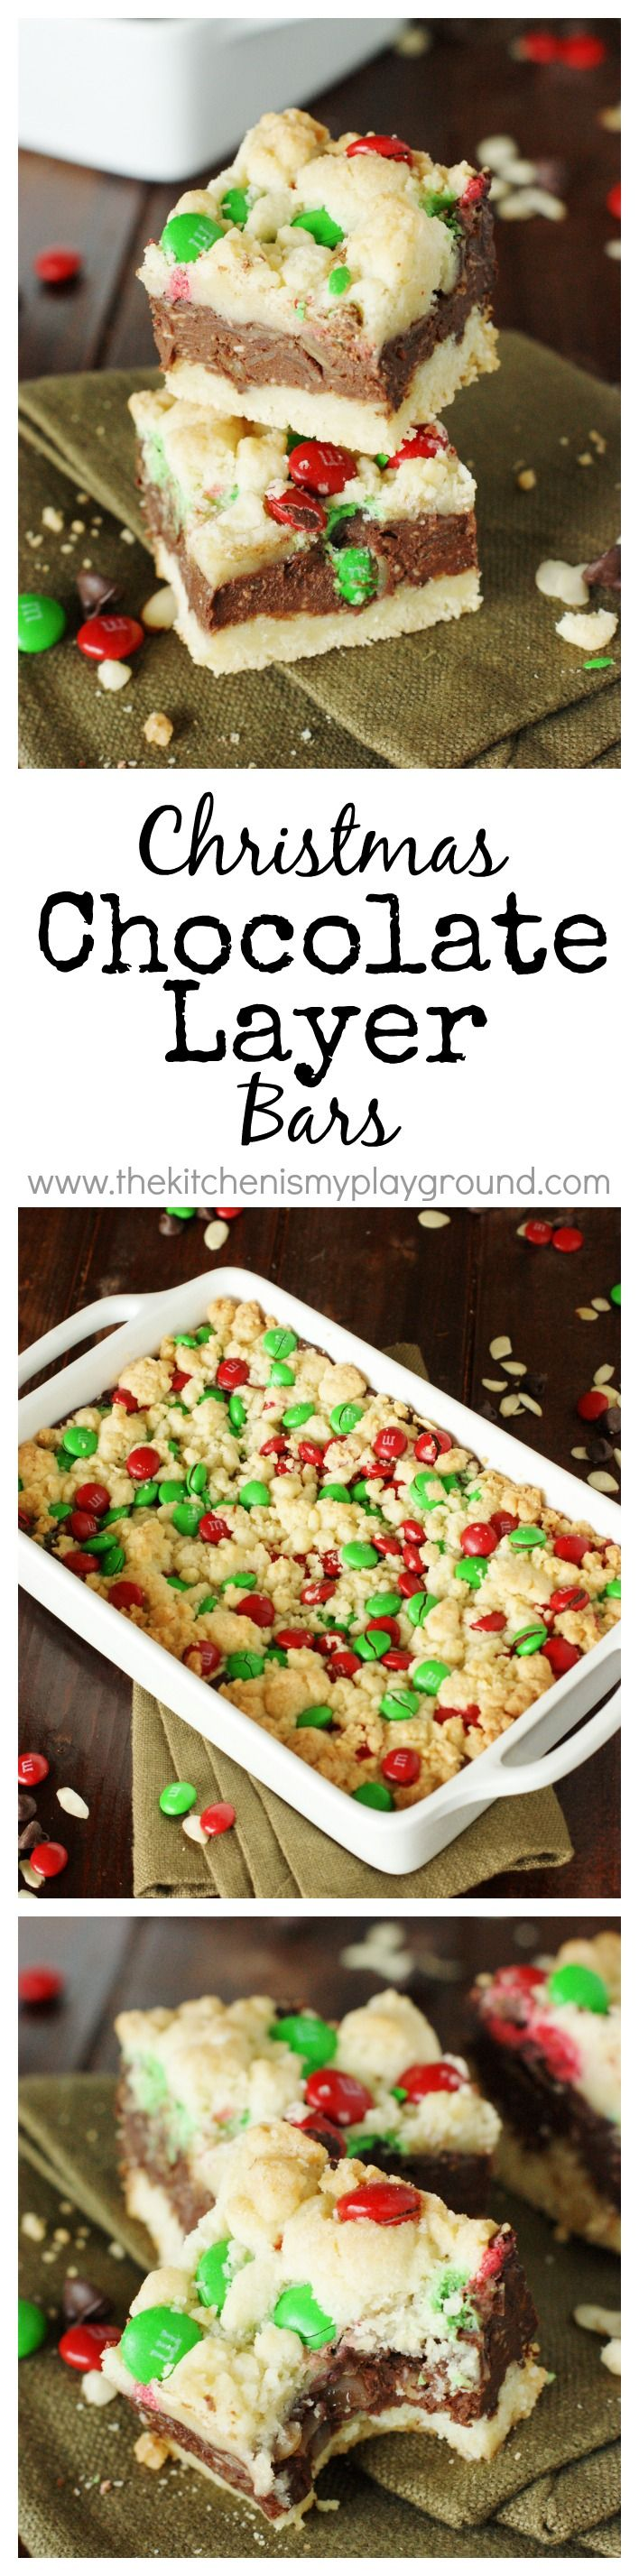 Christmas Chocolate Layer Bars ~ rich & fudgy bars adorned with festive red and green for the holidays!   www.thekitchenismyplayground.com